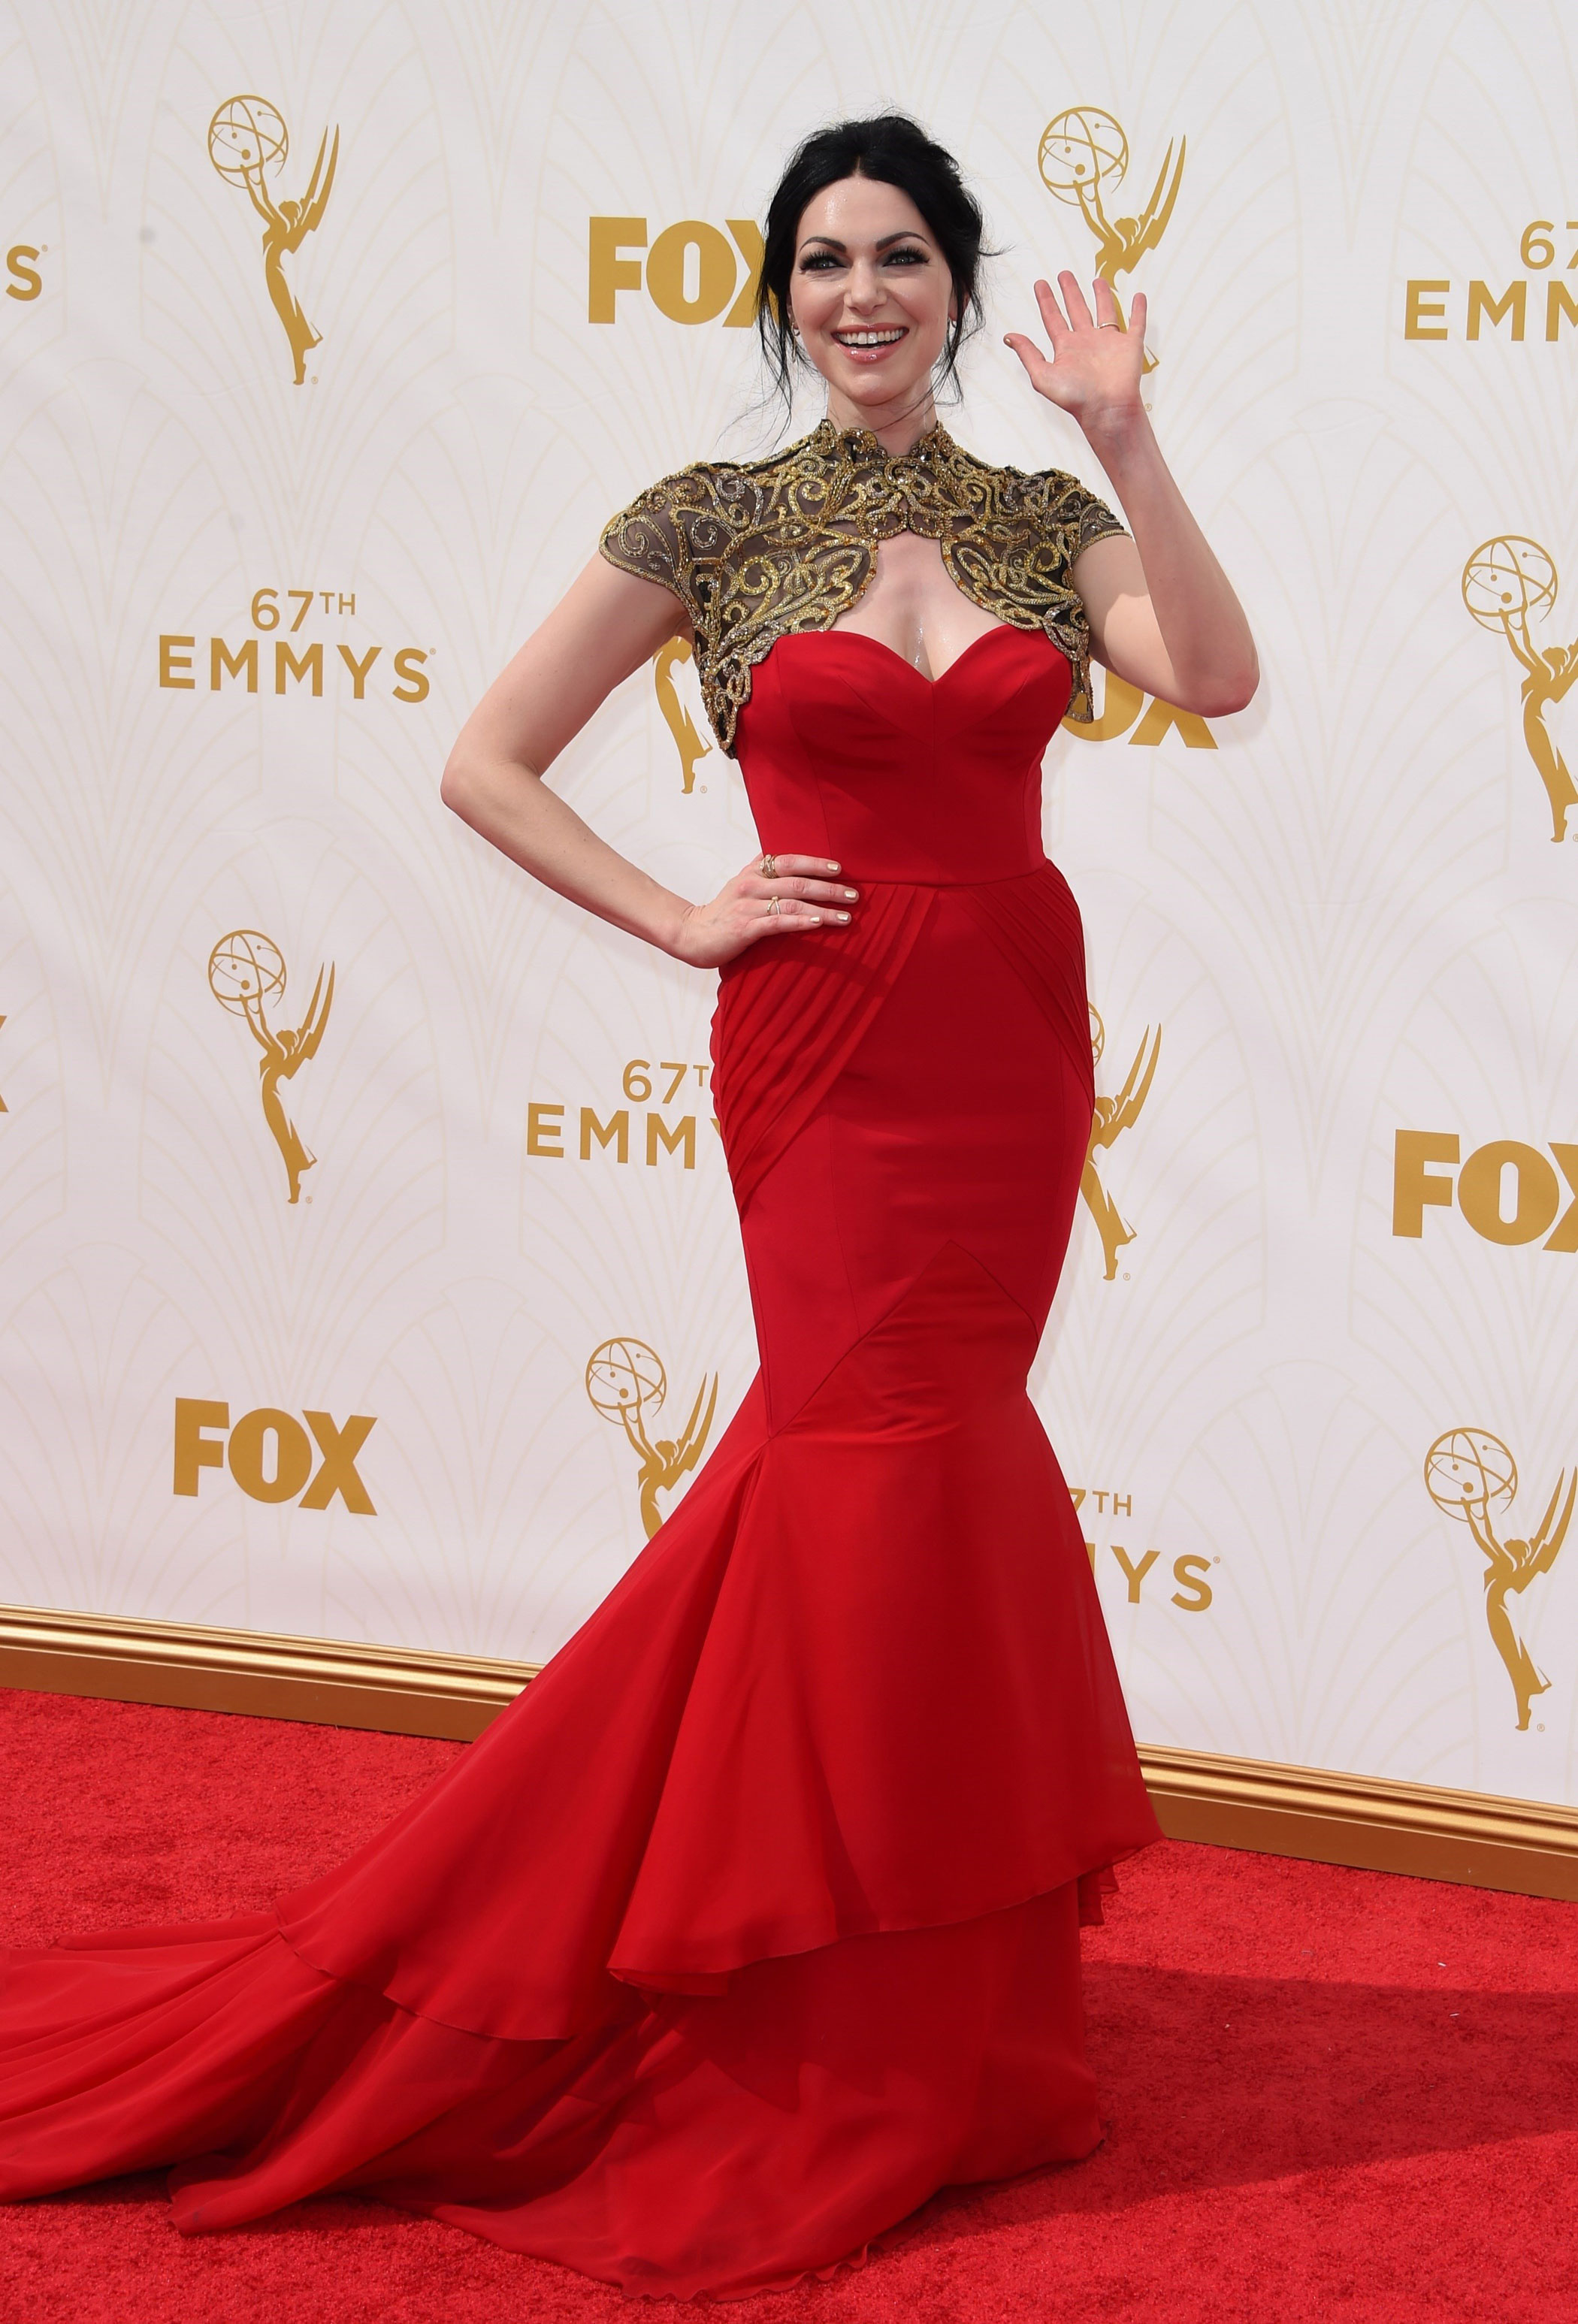 Laura Prepon at the 67th Emmy Award on Sept. 20, 2015 in Los Angeles.